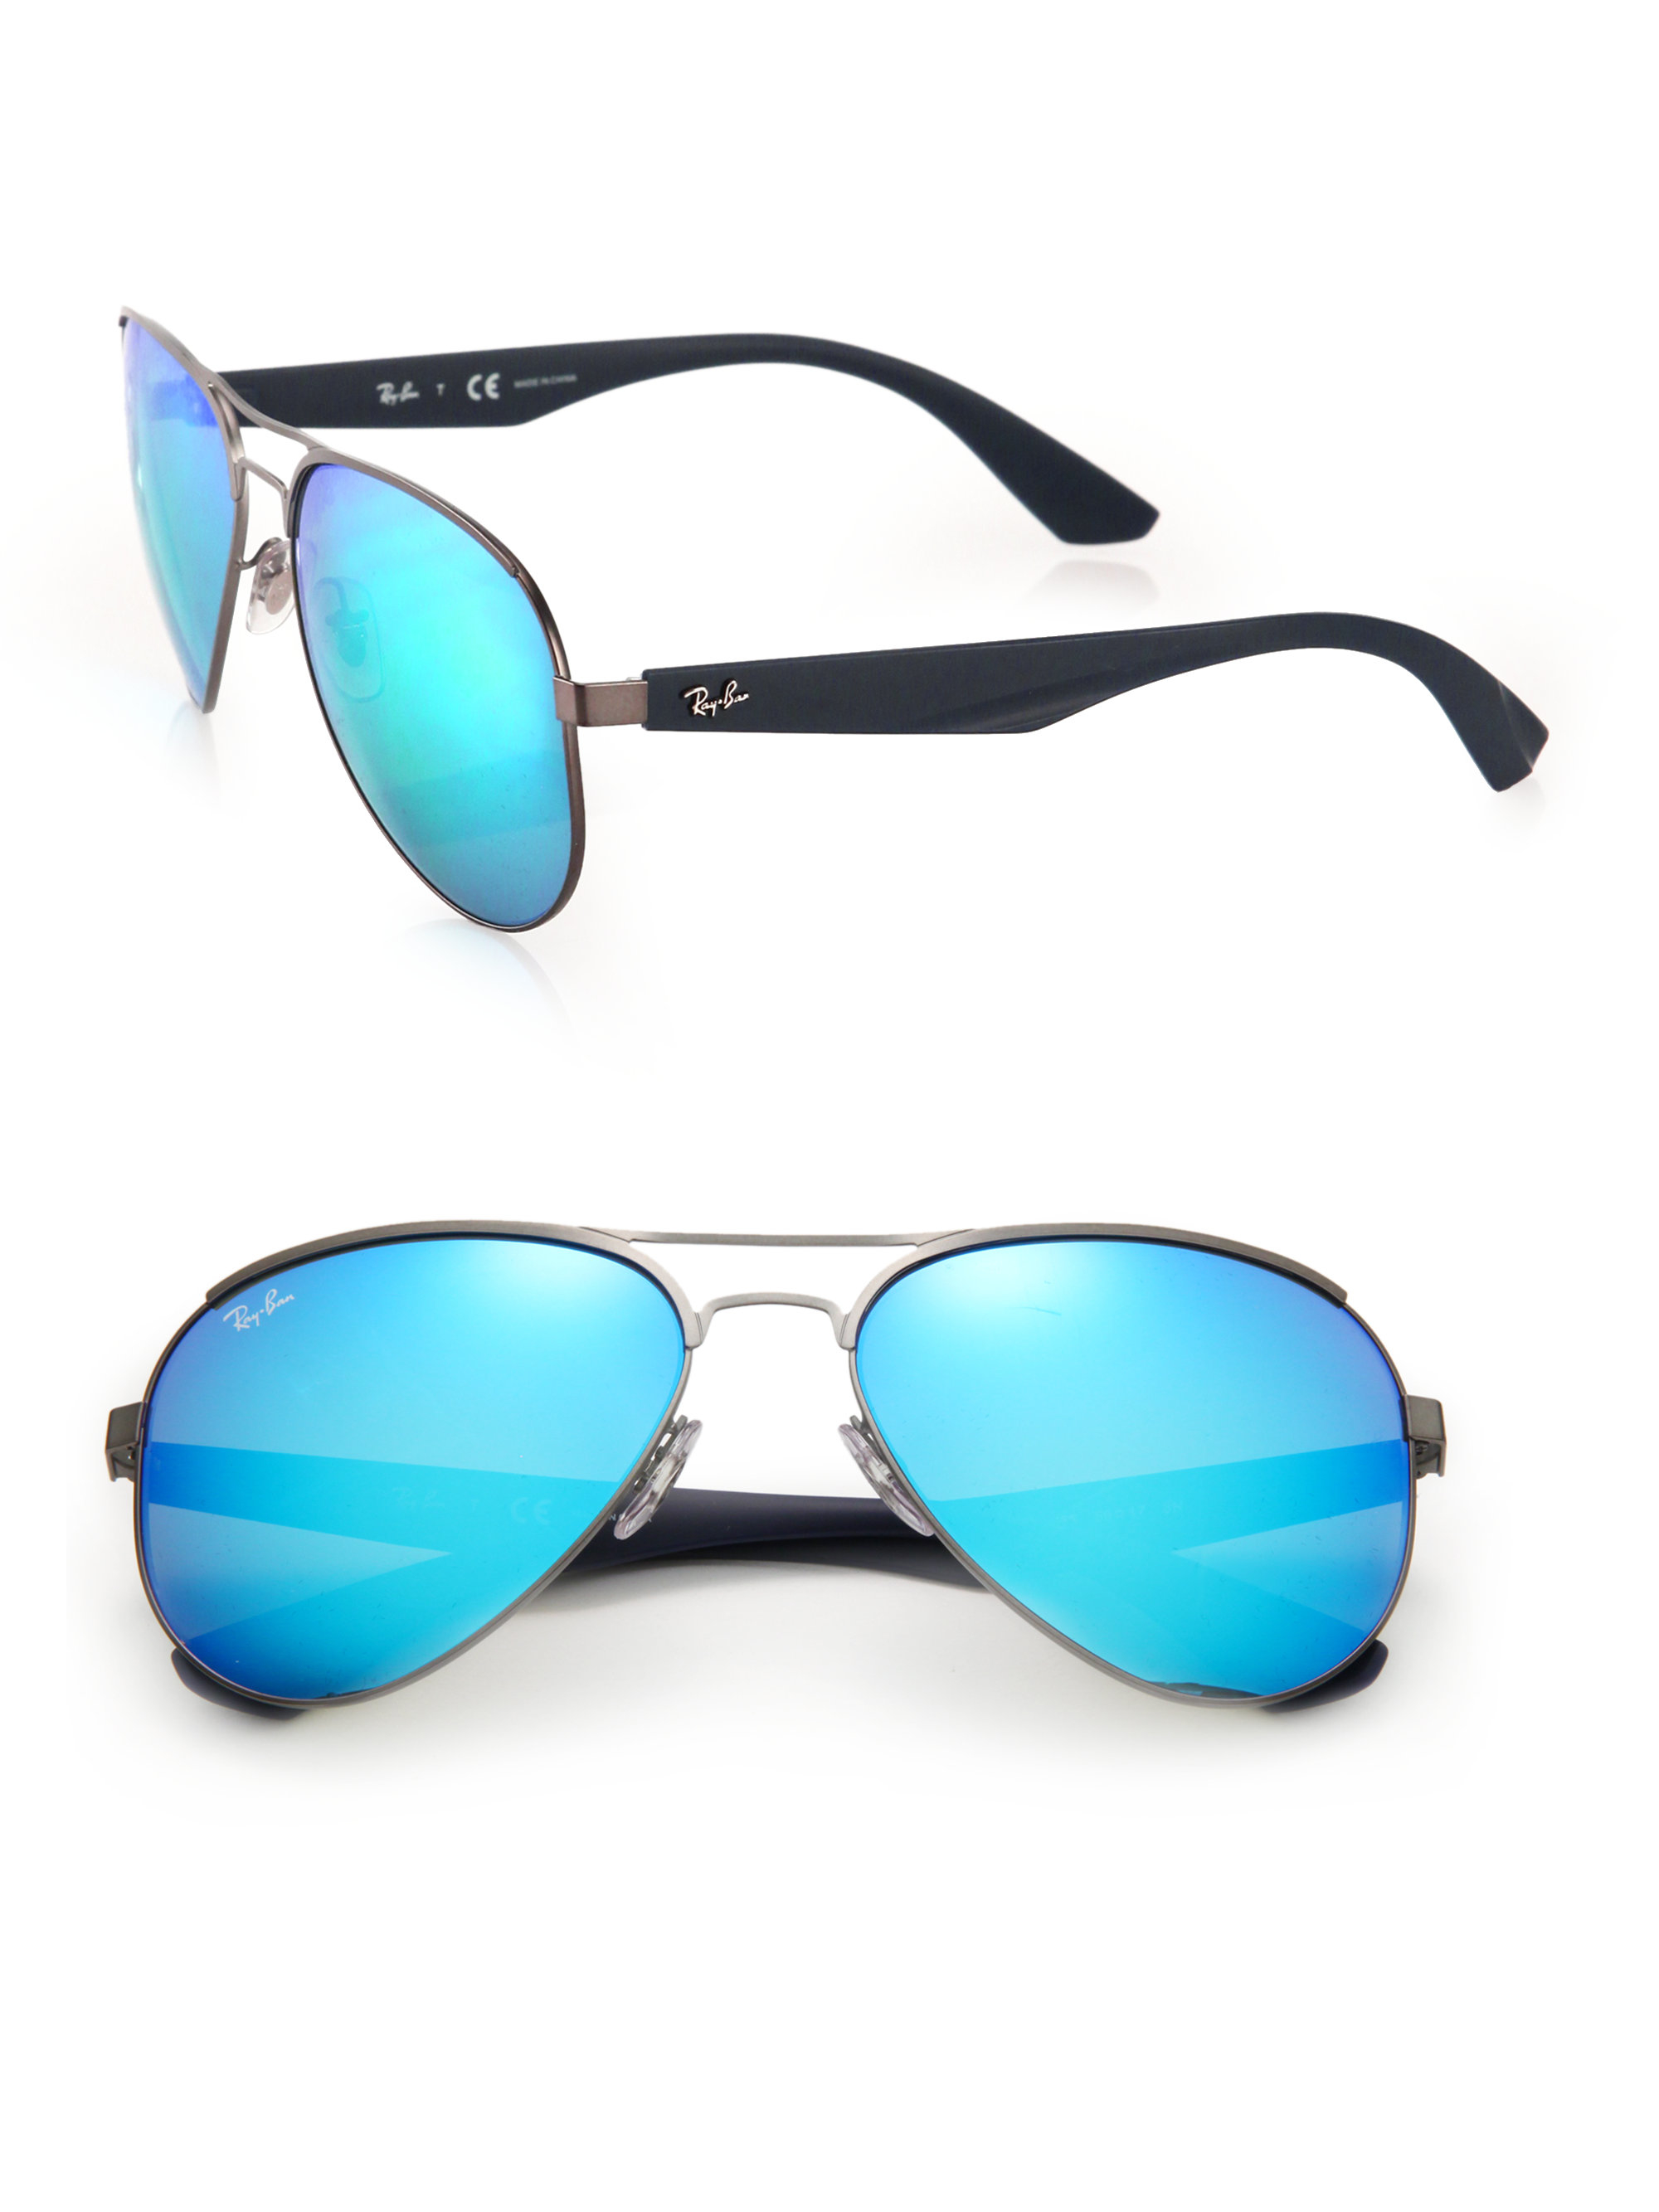 6171ecbc3d834 Ray-ban 59mm Highstreet Aviator Sunglasses in Blue for Men